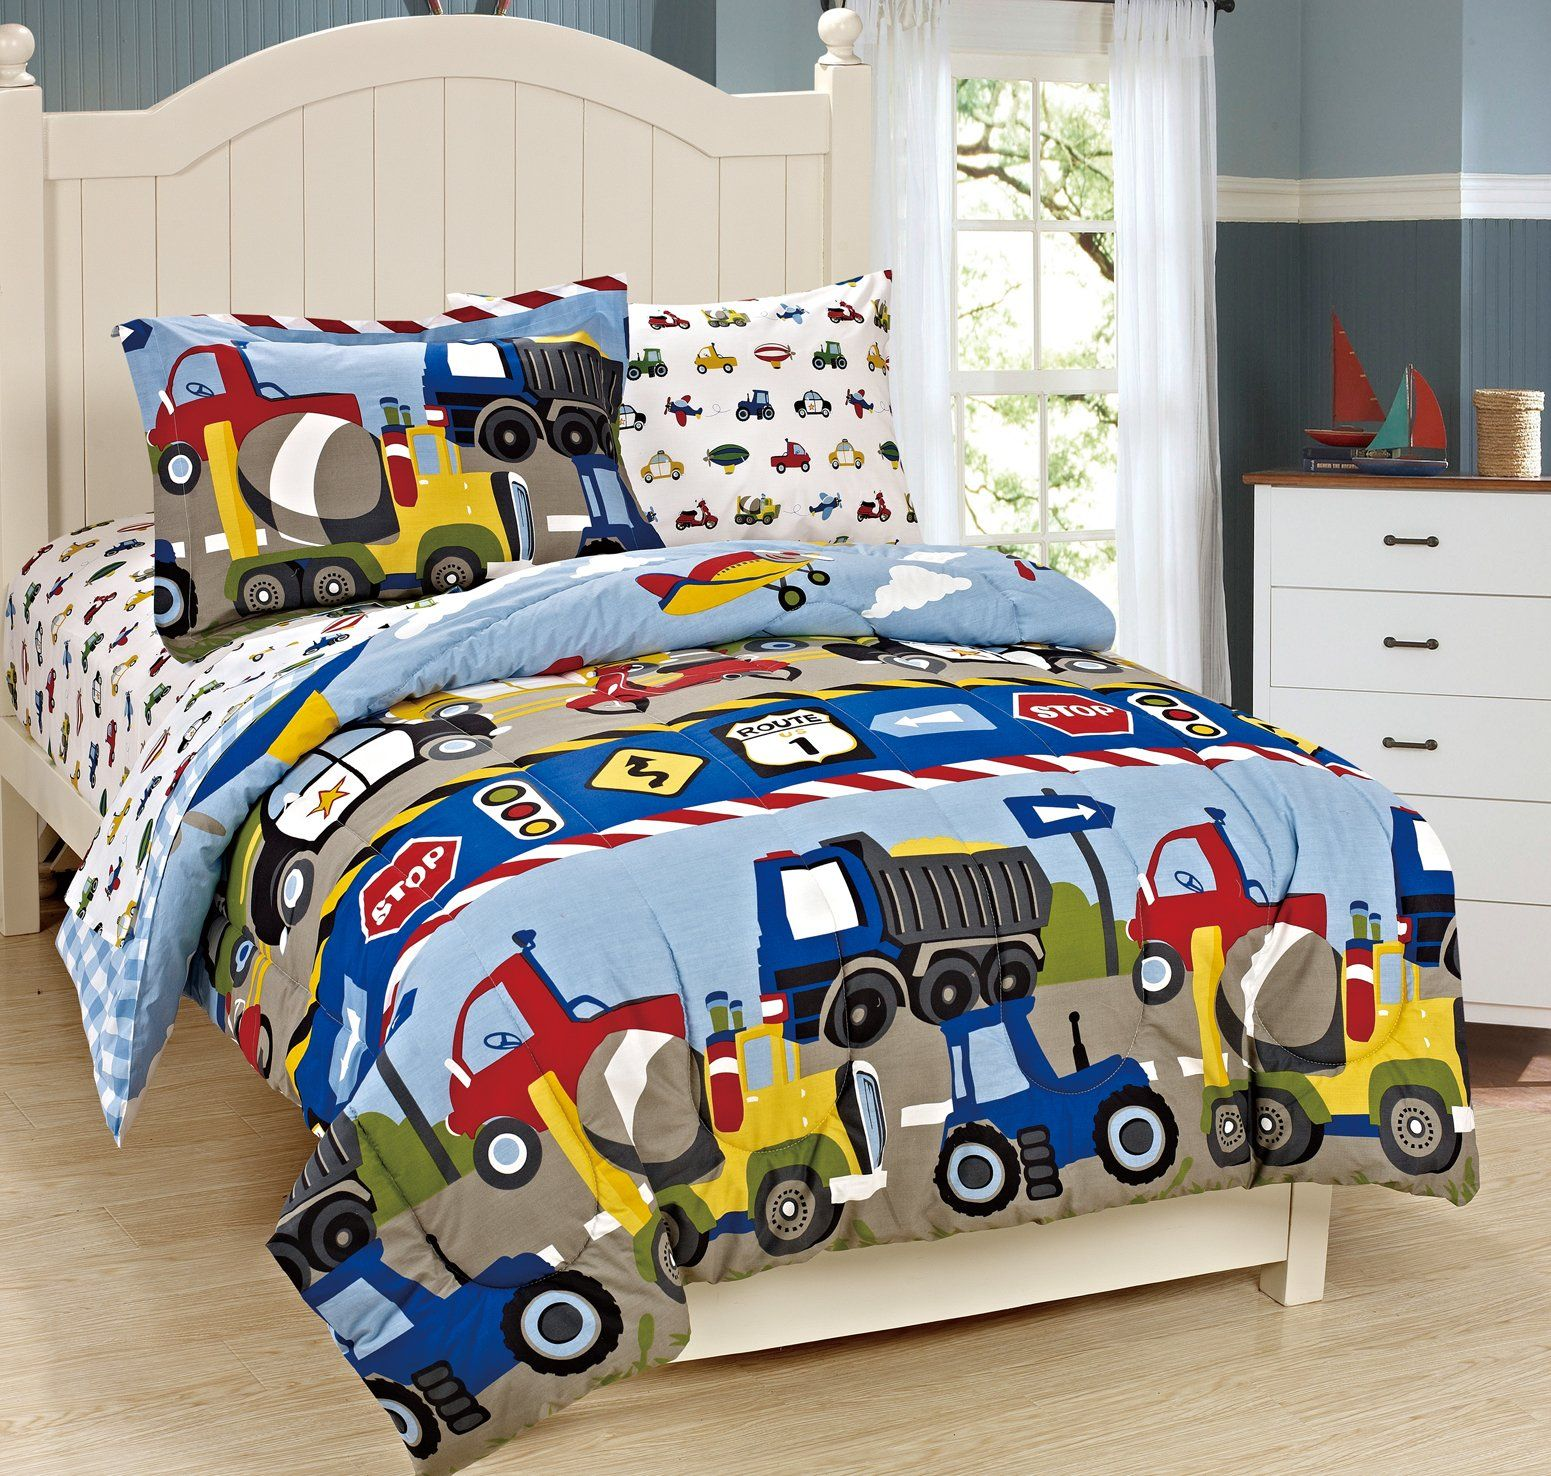 Mk Collection Twin Size Kids Teens Boys 5 Pc Comforter And Sheet Set